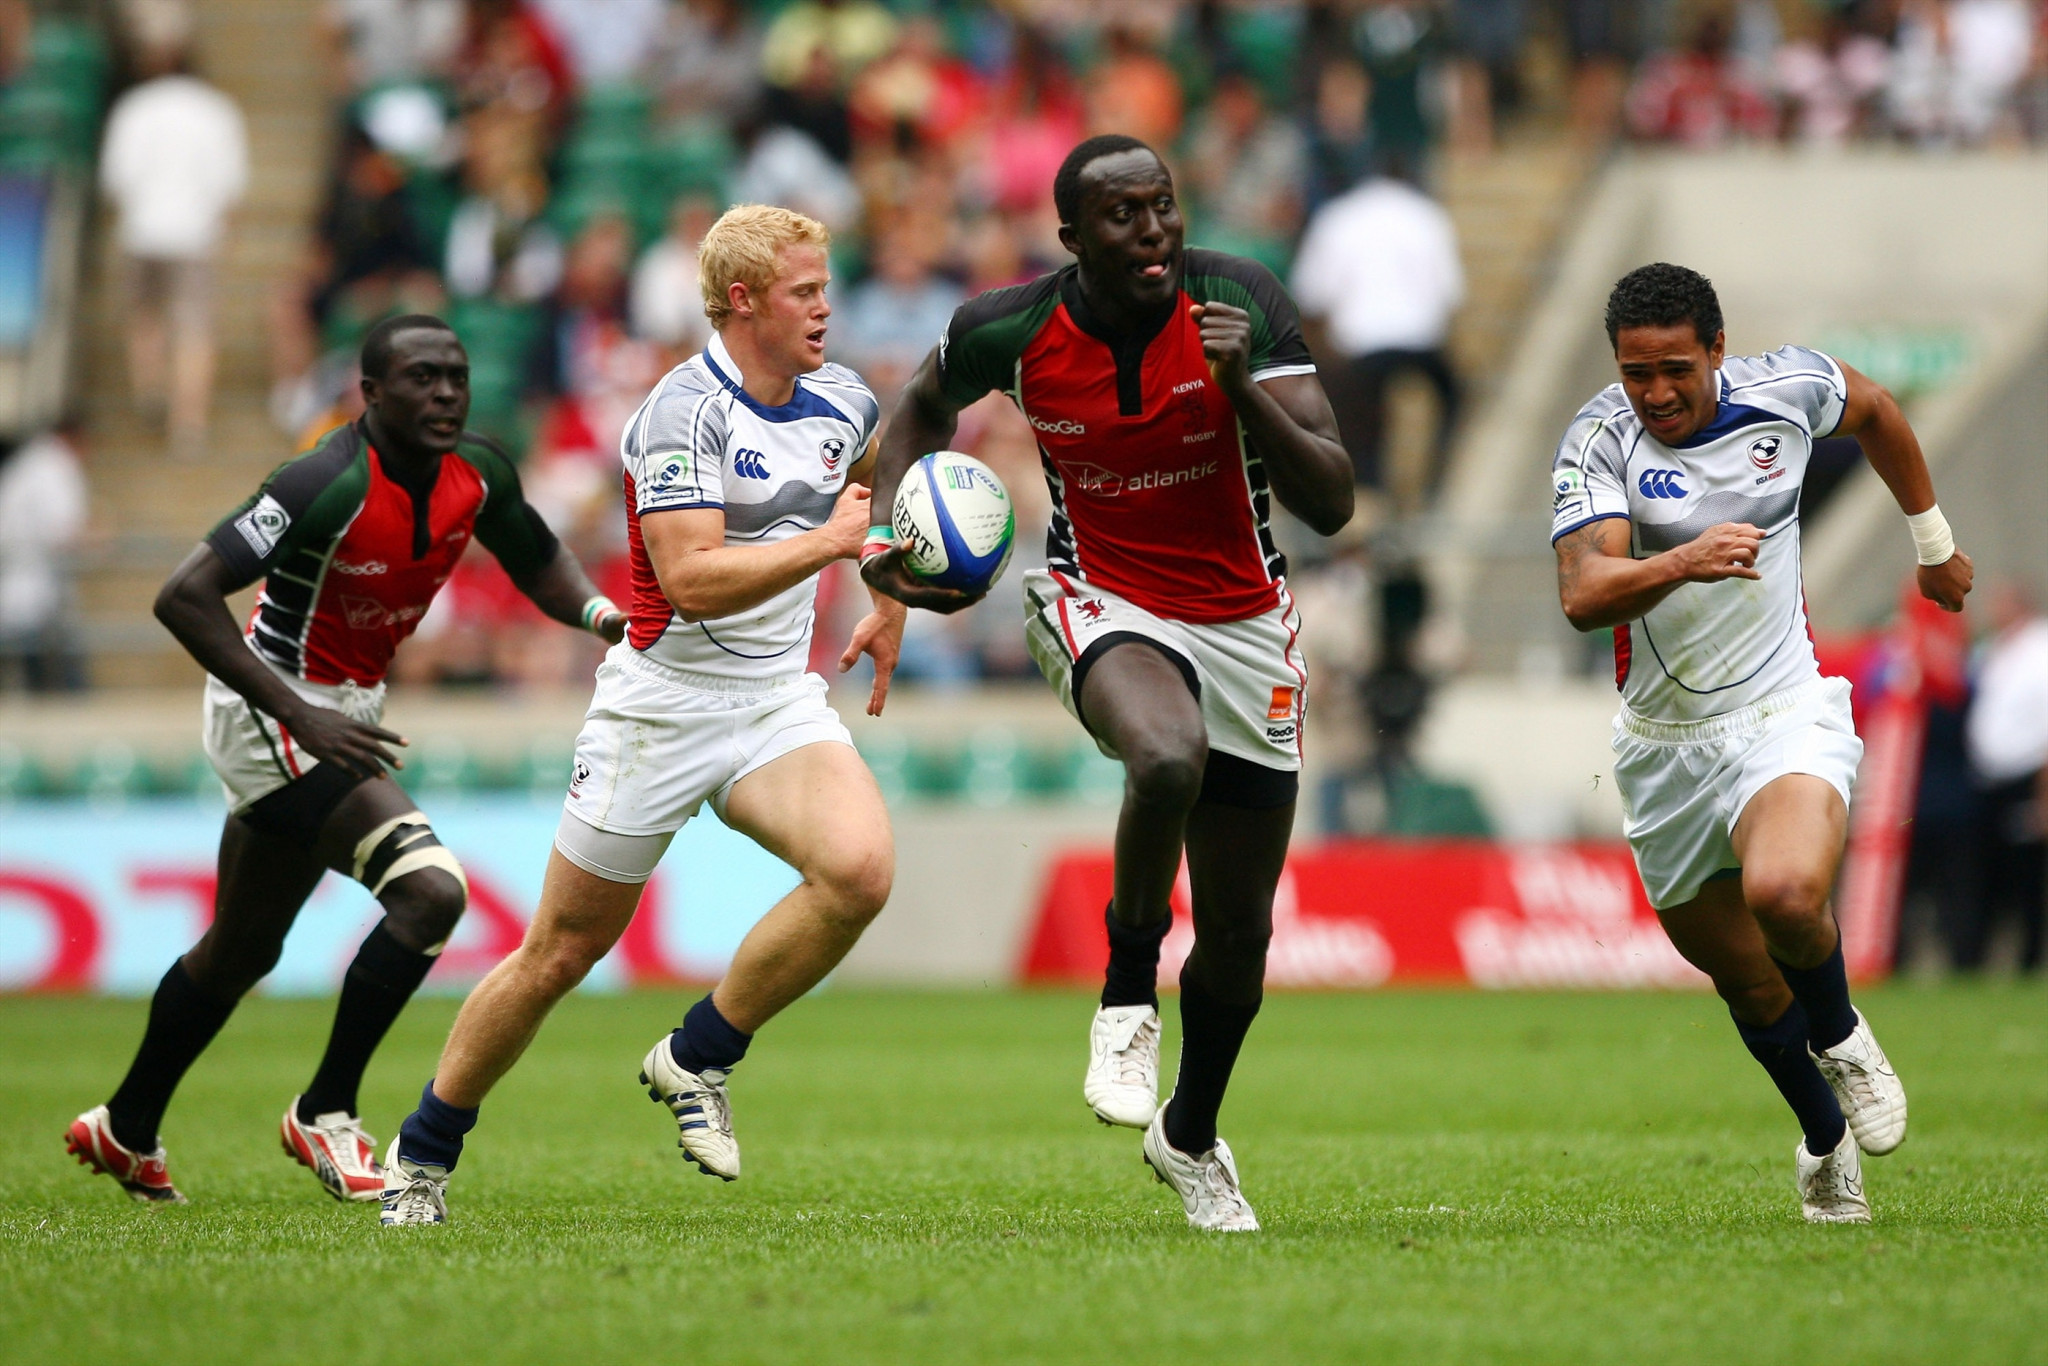 Humphrey Kayange is considered one of Kenya's greatest players and in 2009 was nominated for World Sevens Player of the Year after leading his side to the World Cup semi-final ©Getty Images